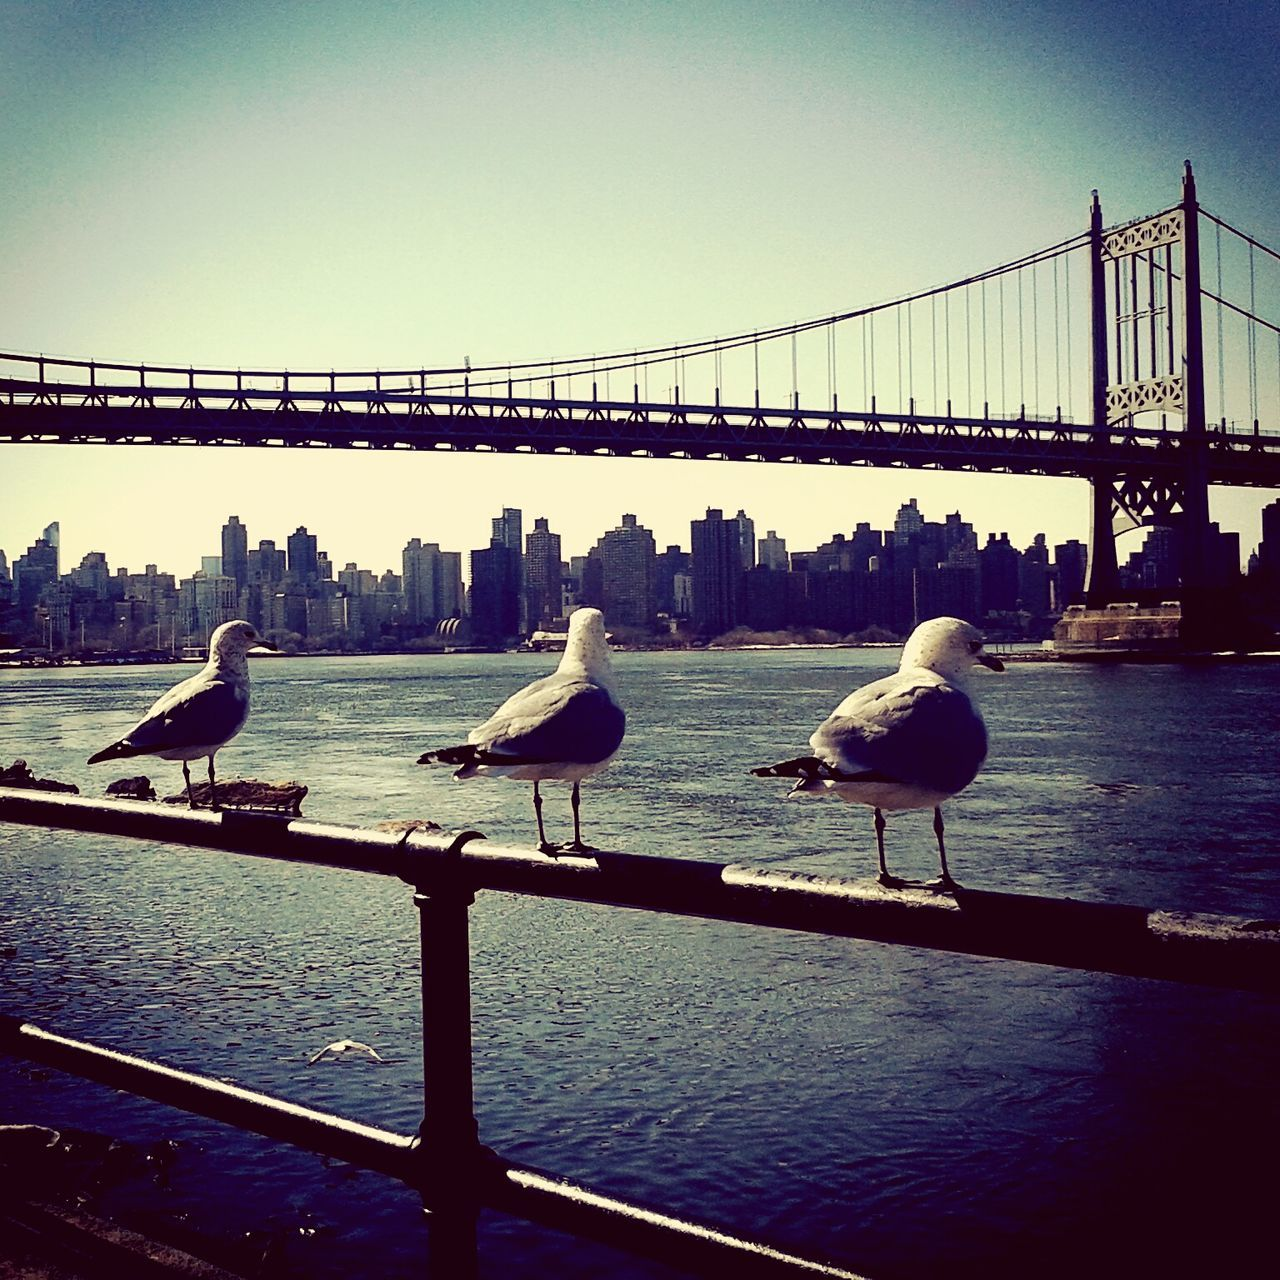 bird, animals in the wild, animal themes, seagull, water, railing, bridge - man made structure, connection, river, clear sky, animal wildlife, suspension bridge, architecture, bridge, perching, large group of animals, built structure, nature, day, outdoors, no people, flock of birds, sea bird, sky, city